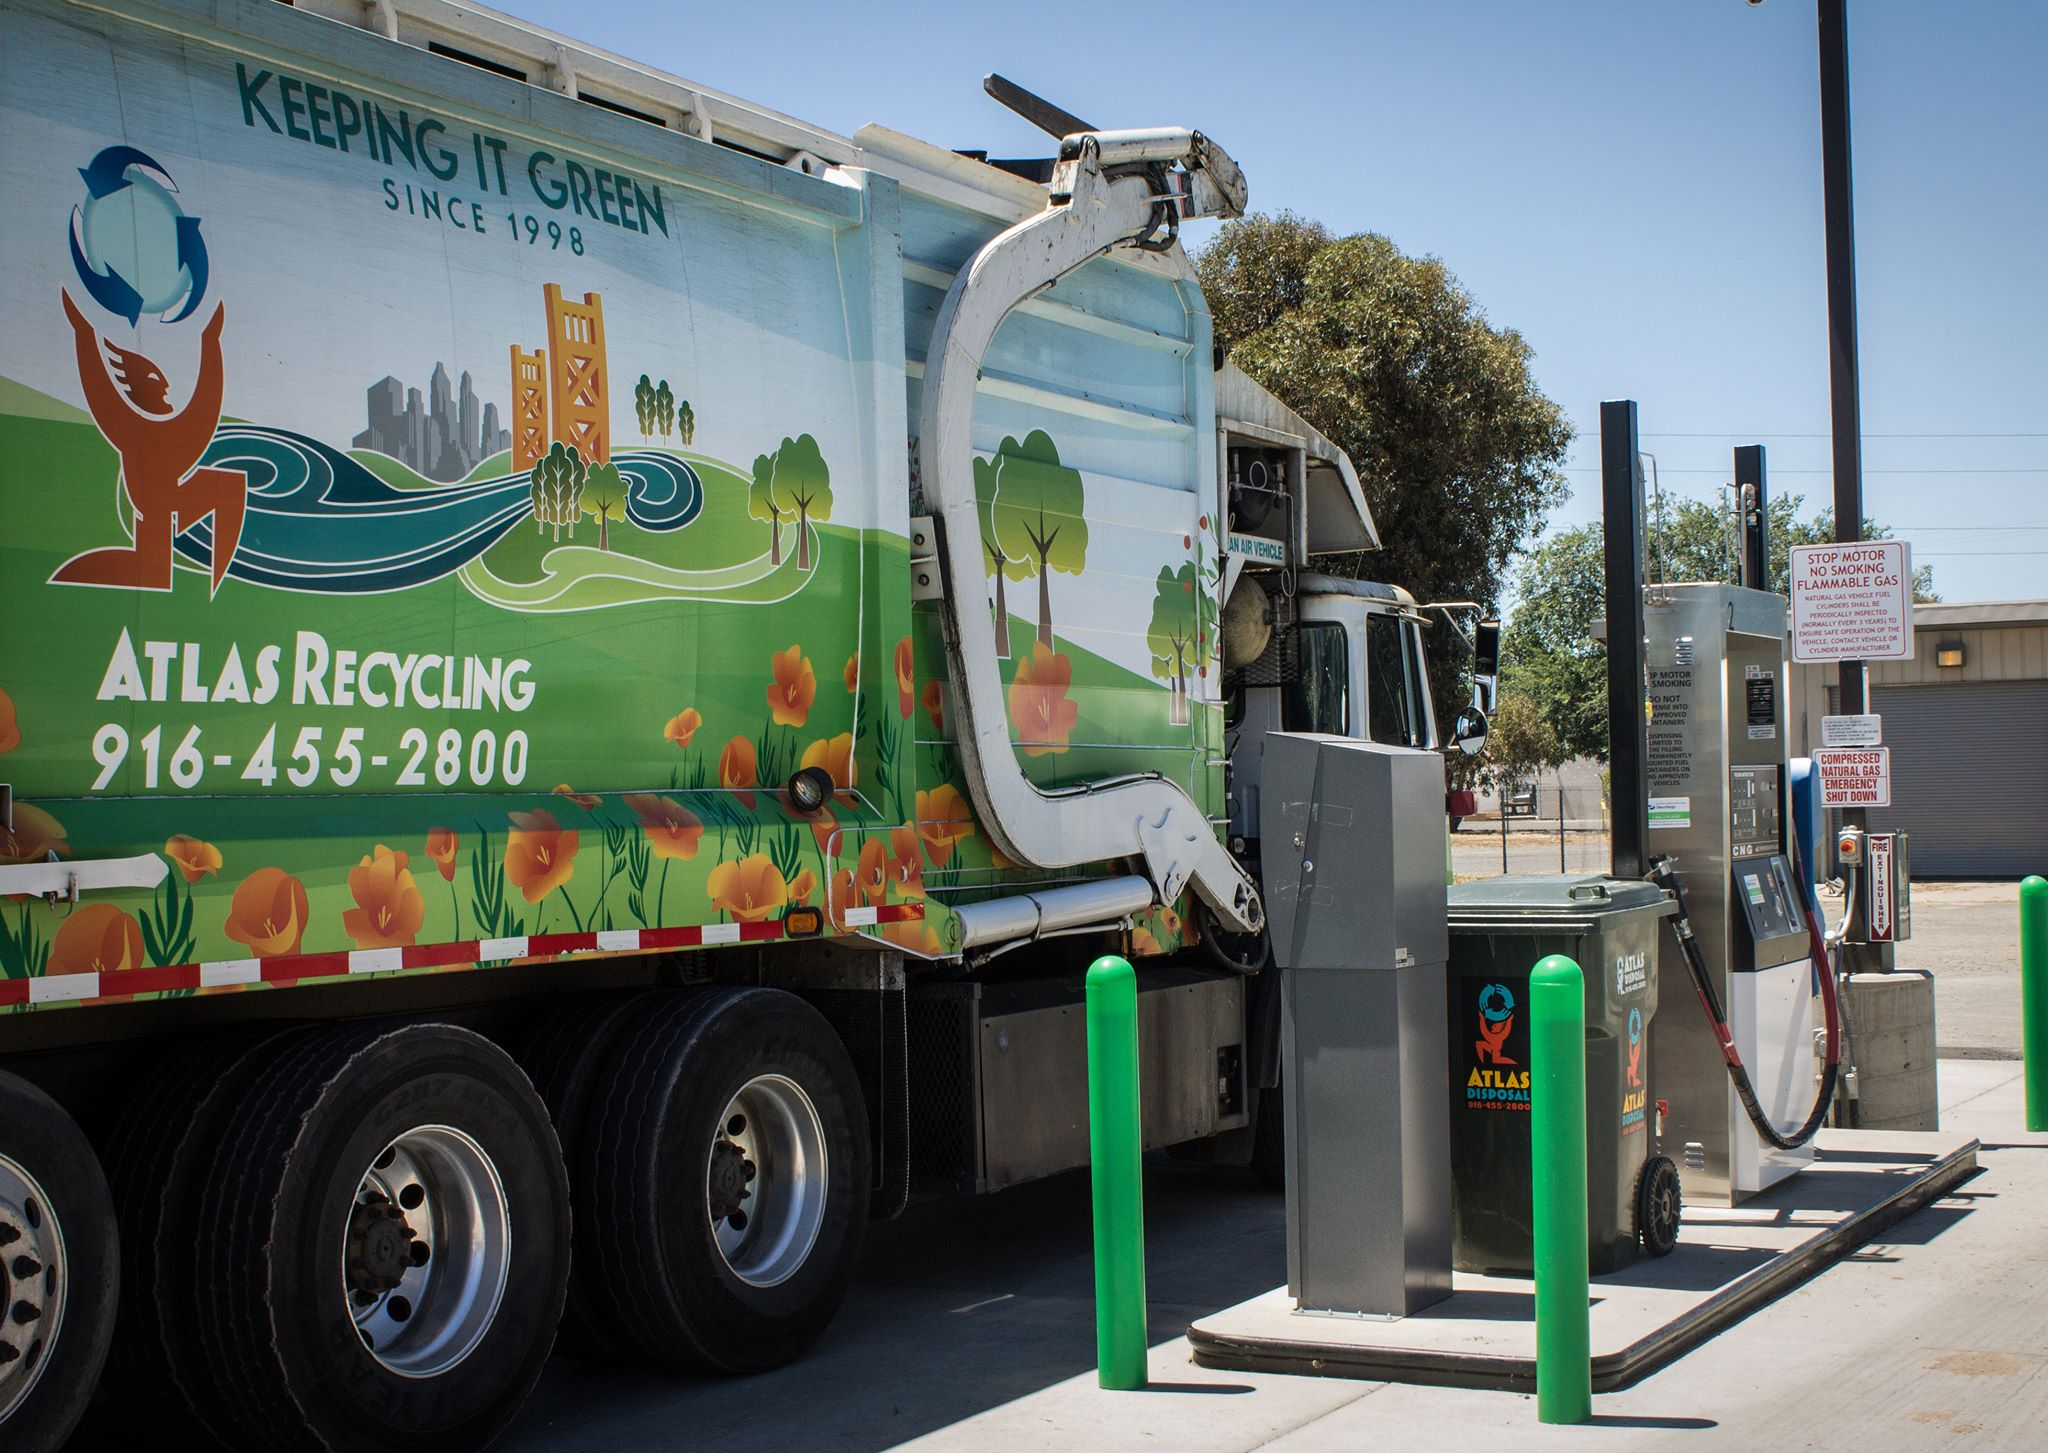 Studies Highlight Significant Carbon Reductions & Eco-Friendly Transport Fuel Creation via Anaerobic Digestion